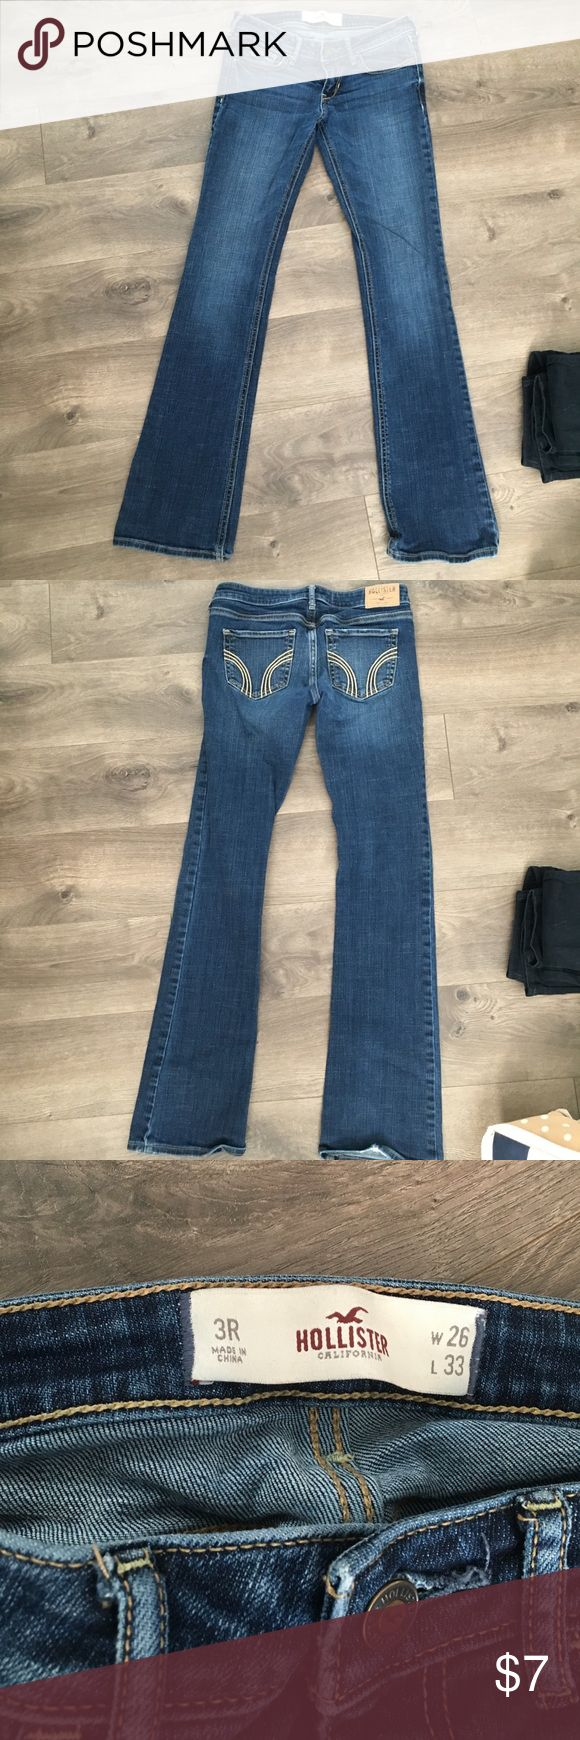 Hollister Boot cut jeans 3R Hollister Boot cut jeans - 3R -excellent condition, no damage, smoke free home Hollister Jeans Boot Cut